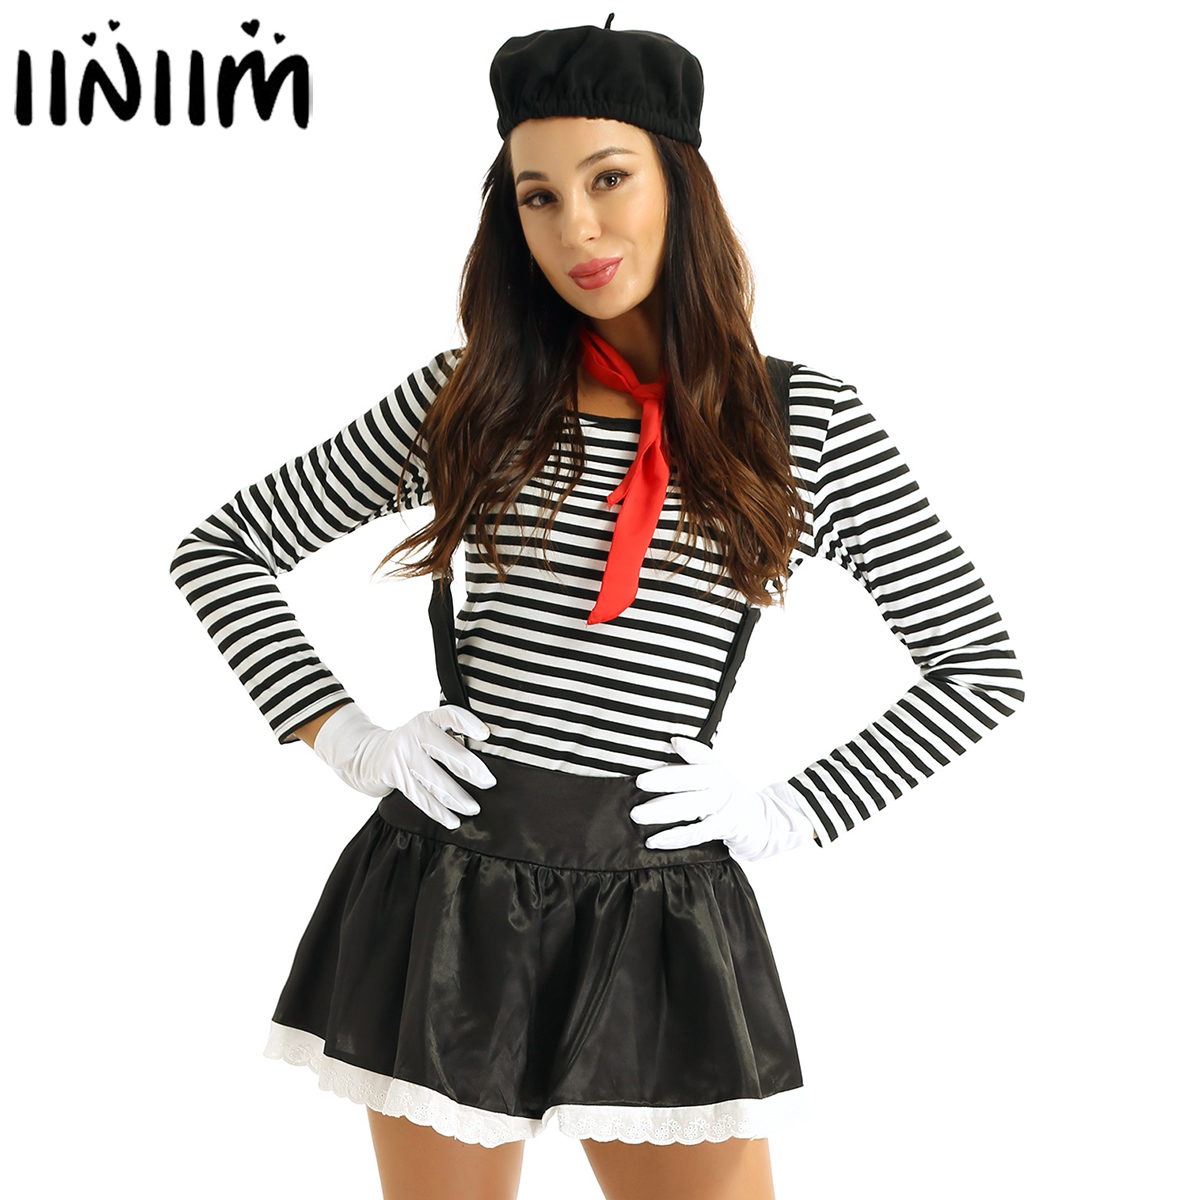 6Pcs Women Adults Mime Costume French Artist Clown Circus Fancy Dress Striped Top Black Skirt With Beret Red Scarf Suspender